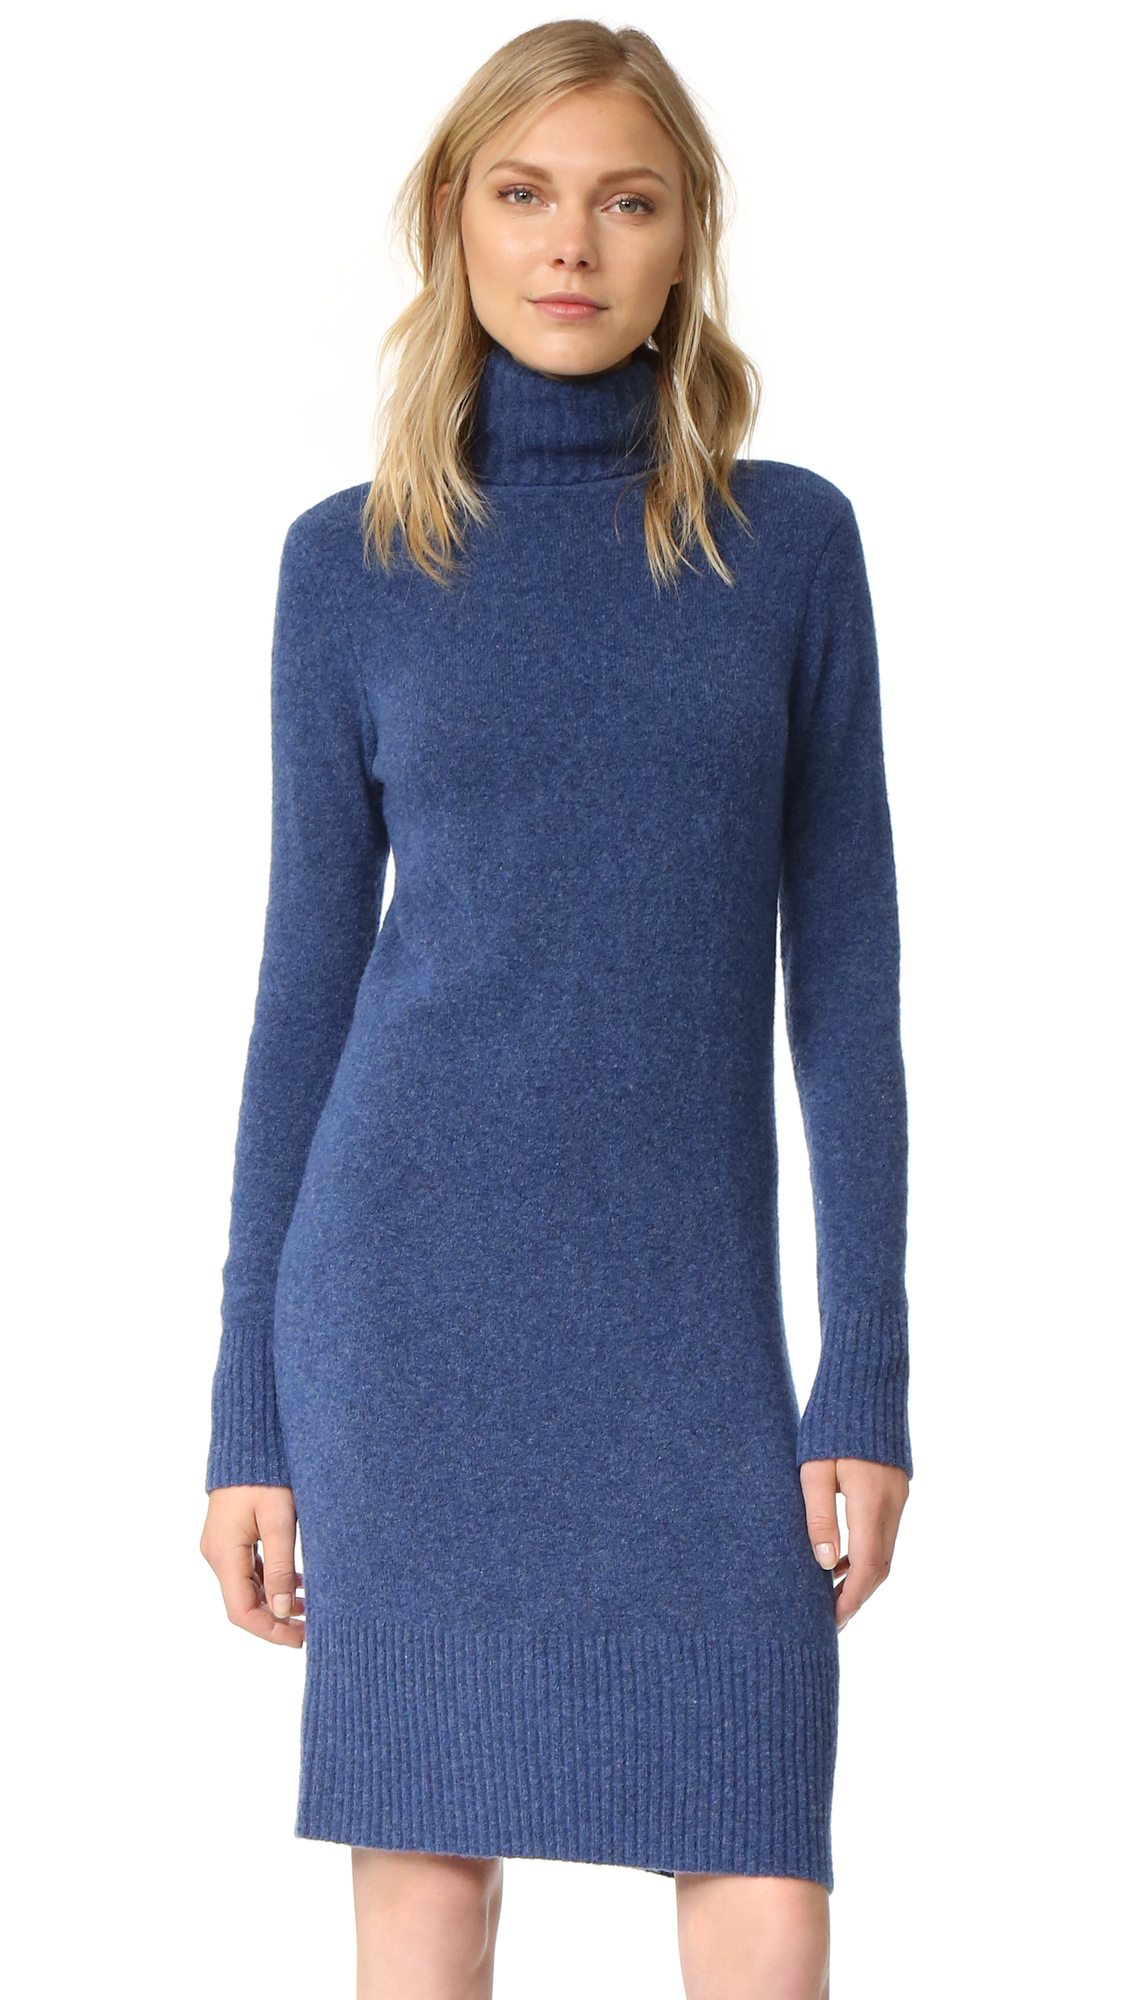 Club Monaco Edvard Turtleneck Sweater Dress | SHOPBOP